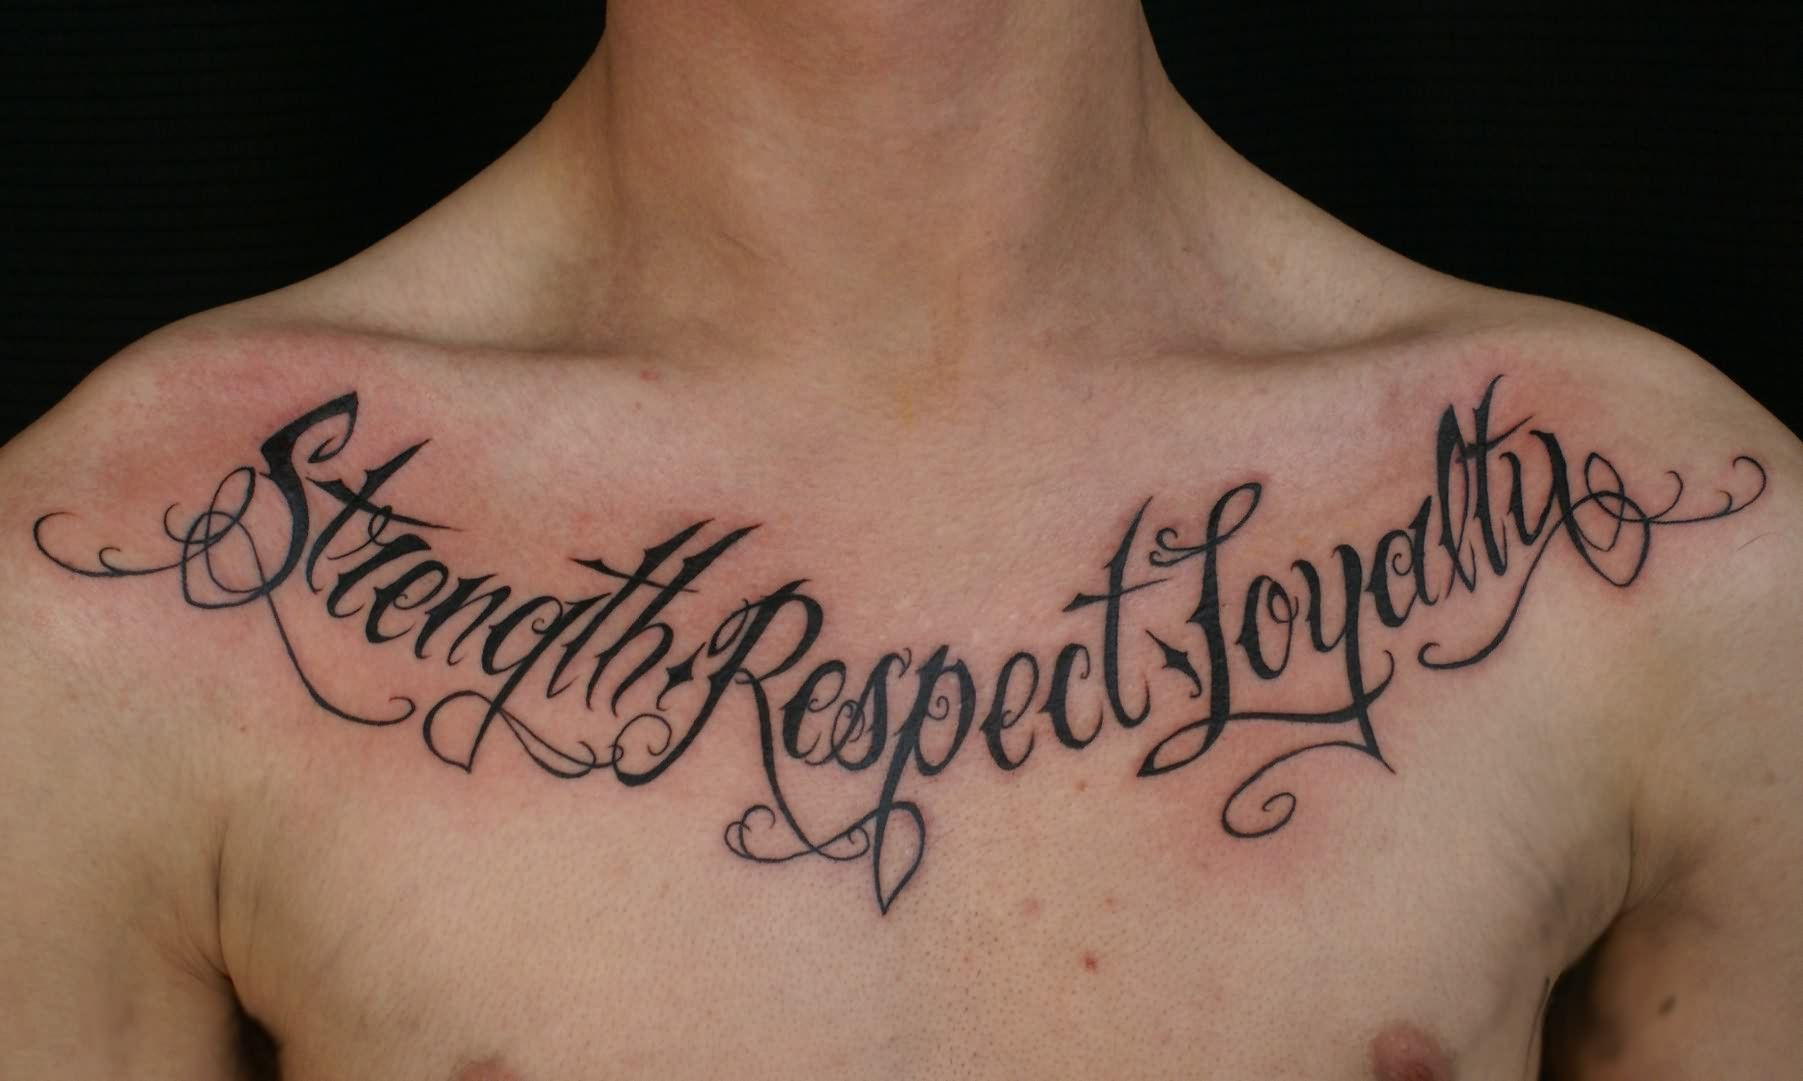 Tattoo Chest Latin Script Tattoo Quotes For Men Loyalty Tattoo Meaningful Tattoo Quotes